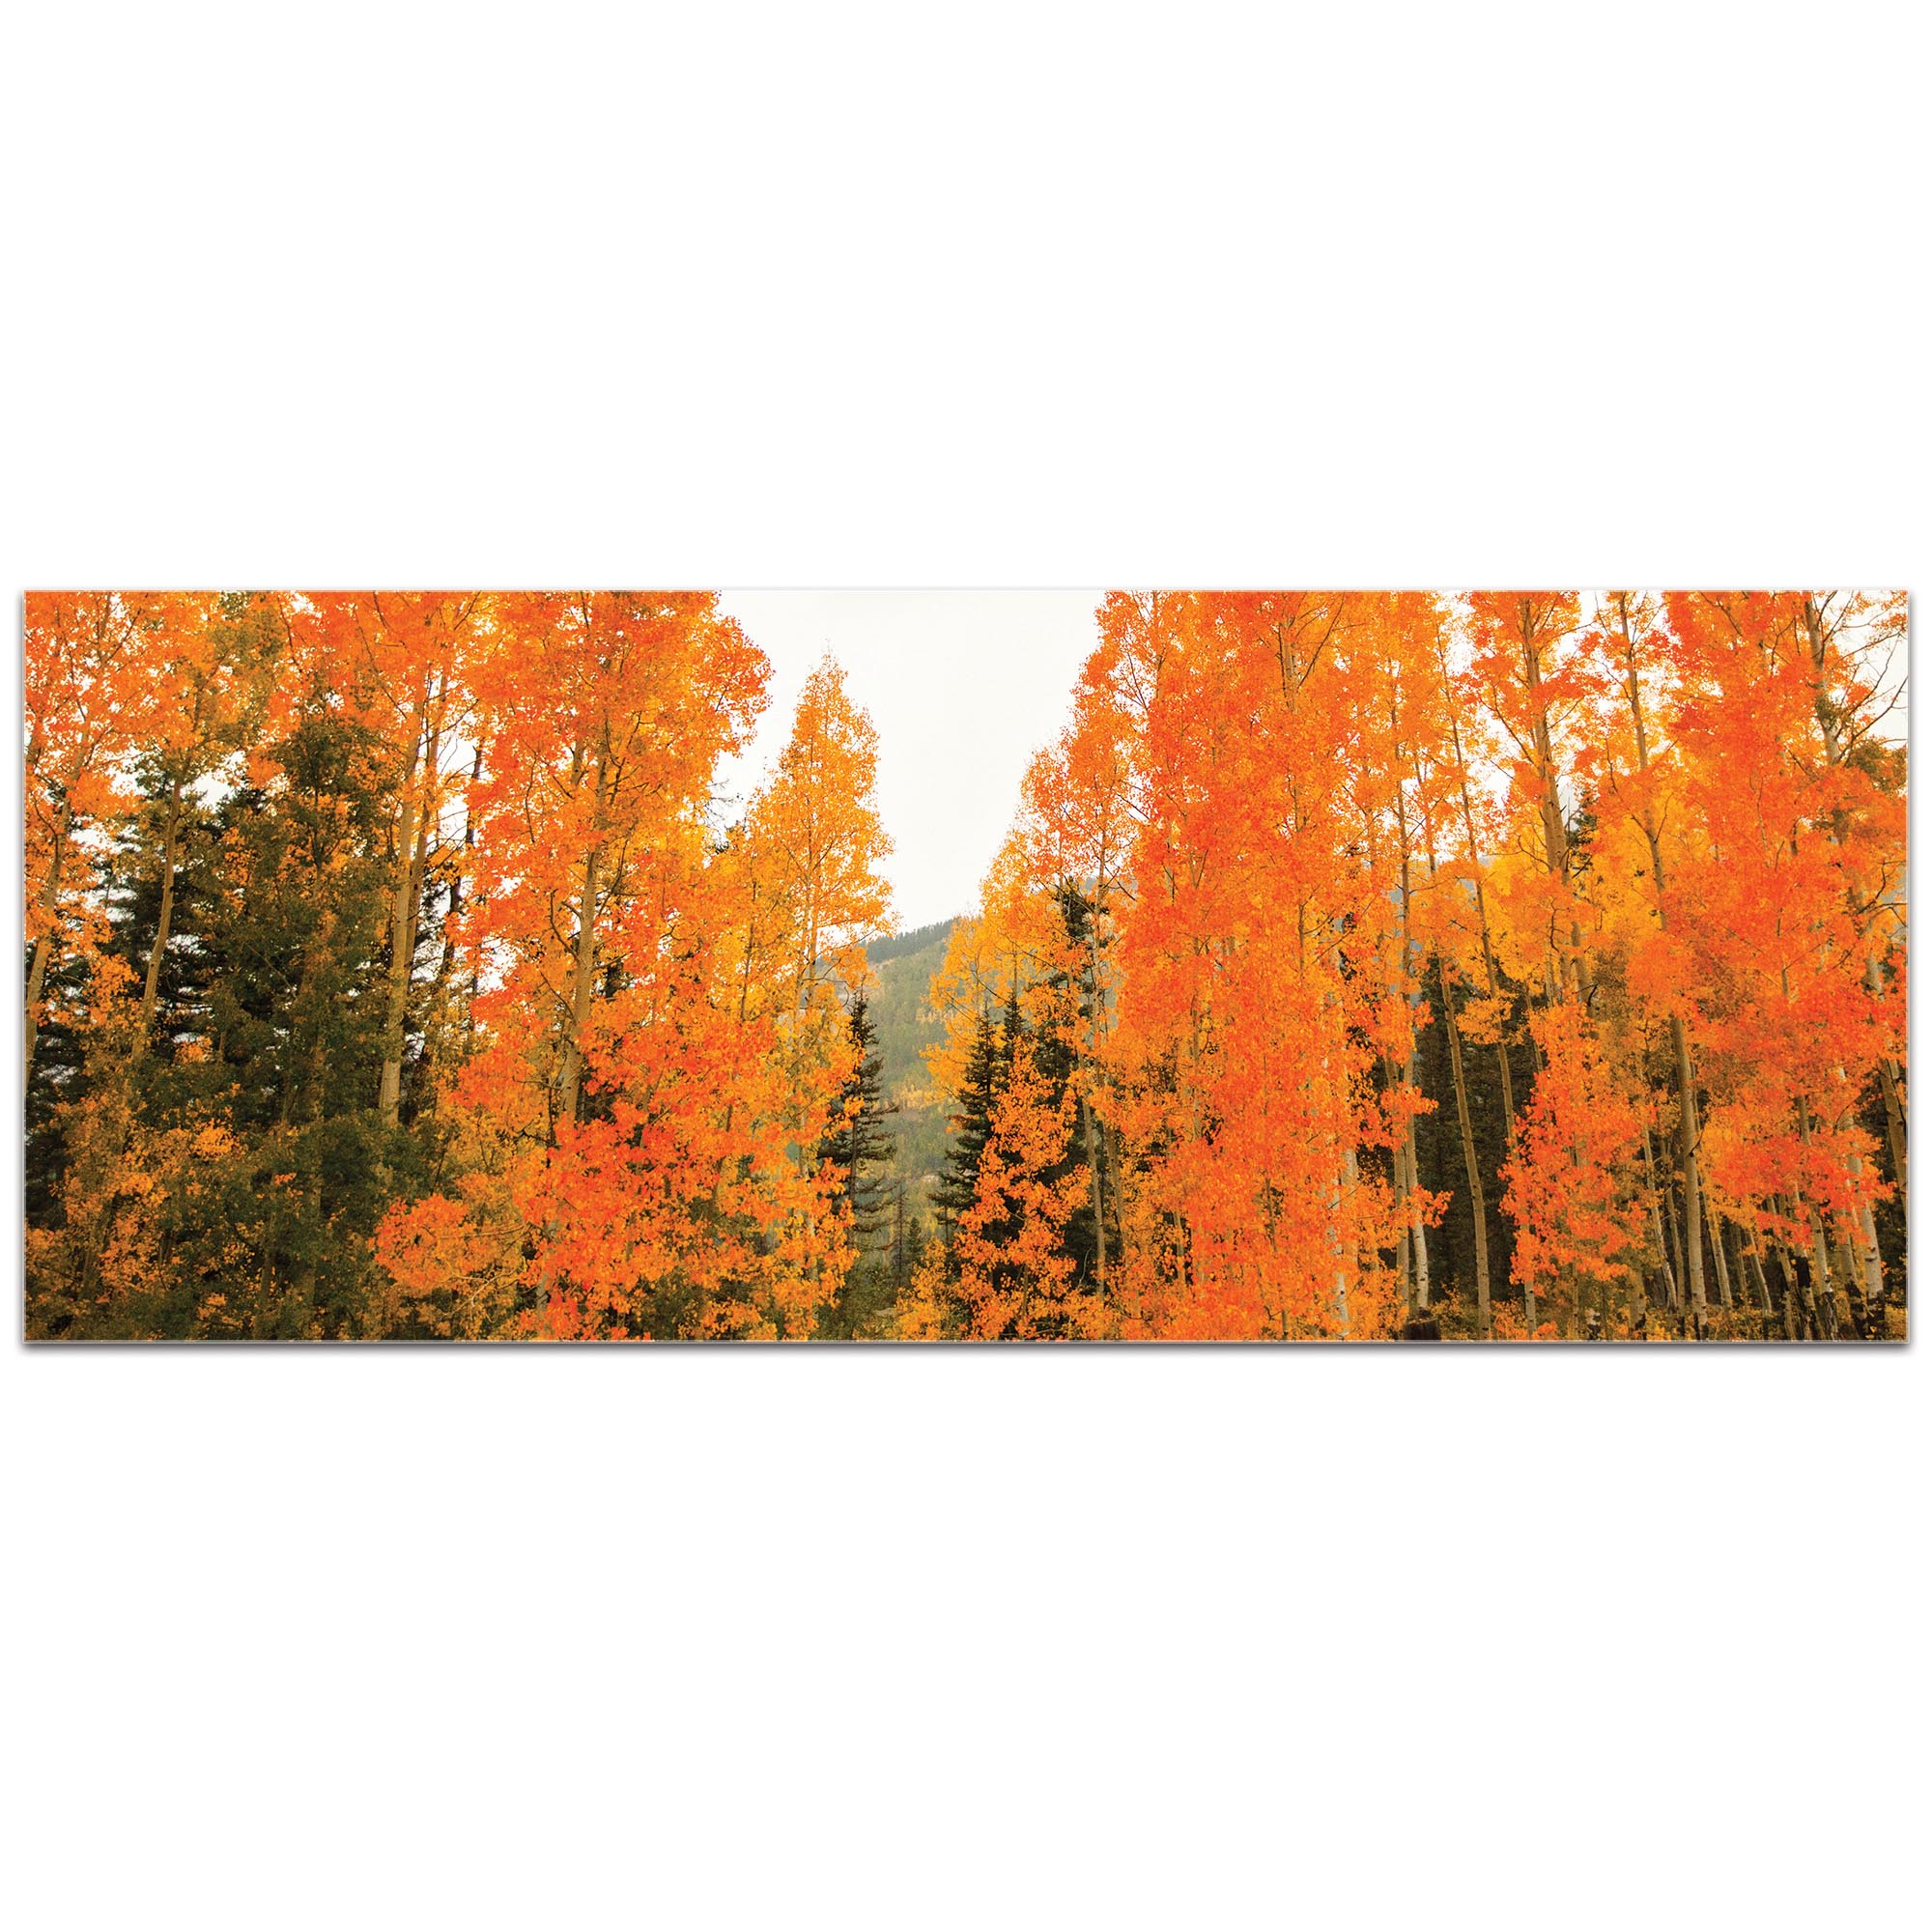 Landscape Photography 'Aspen Fire' - Autumn Nature Art on Metal or Plexiglass - Image 2